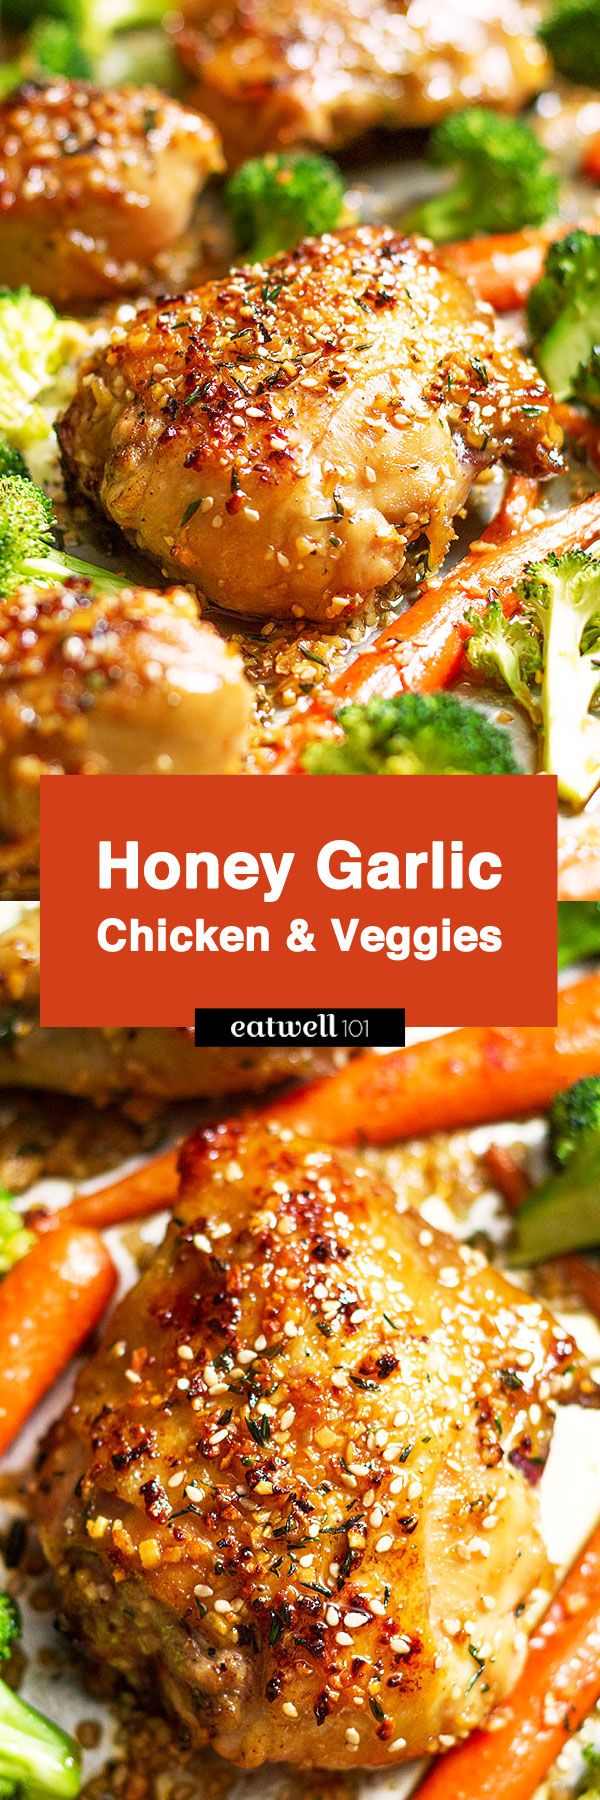 You'll never believe how simple it is to make this sheet pan honey garlic chicken with veggies! Tender chicken, crisp veggies and packed with tons of flavor. Say hello toyour new go to on bu…